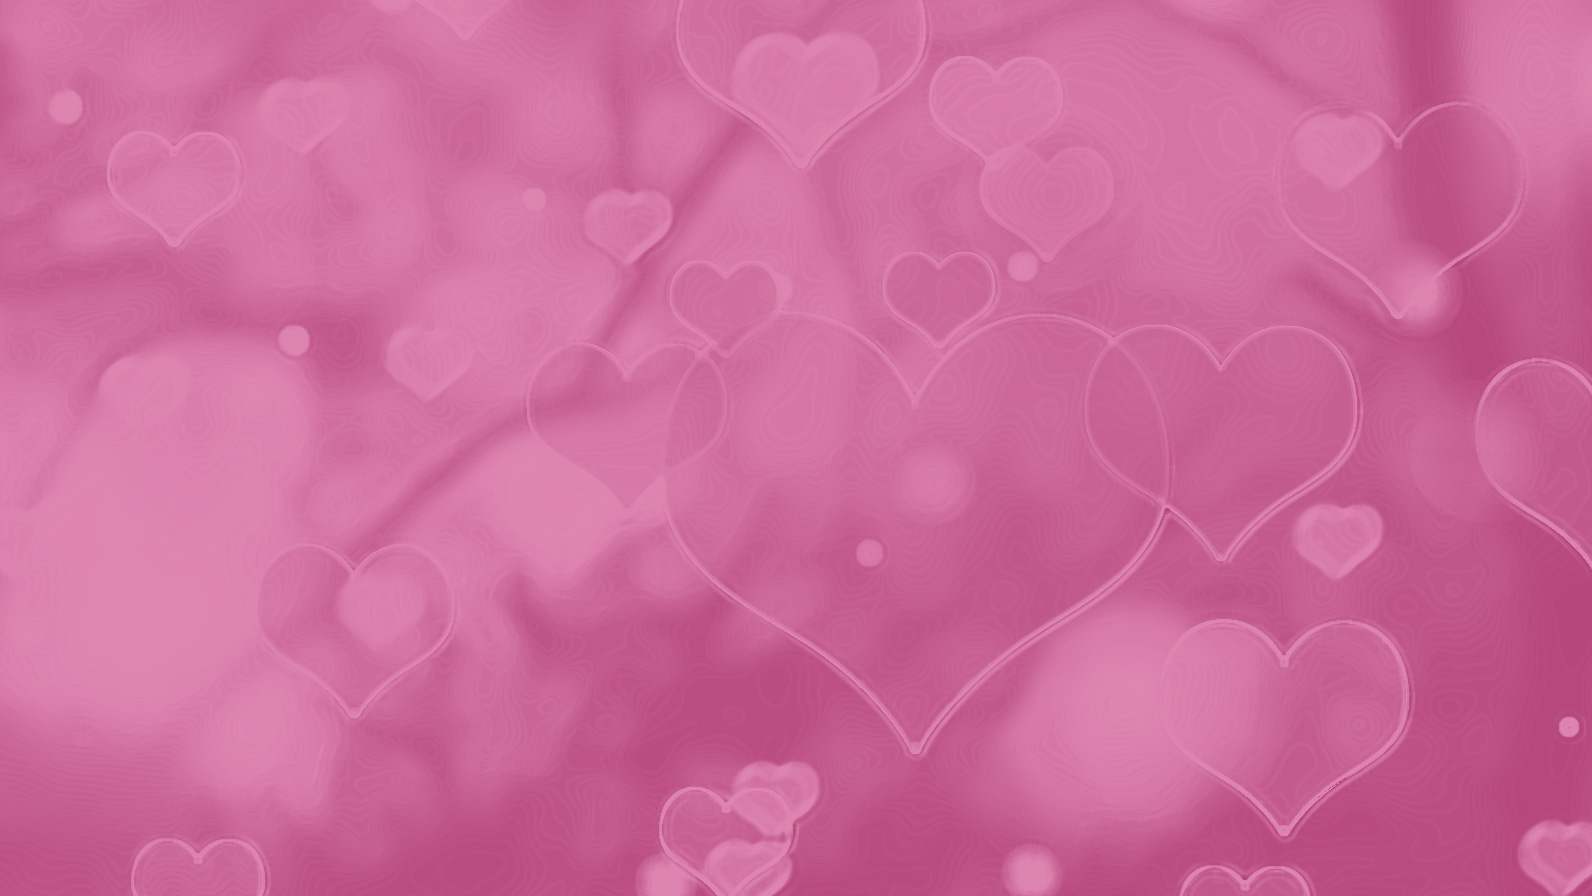 Light Subtle pink hearts background for presentation text